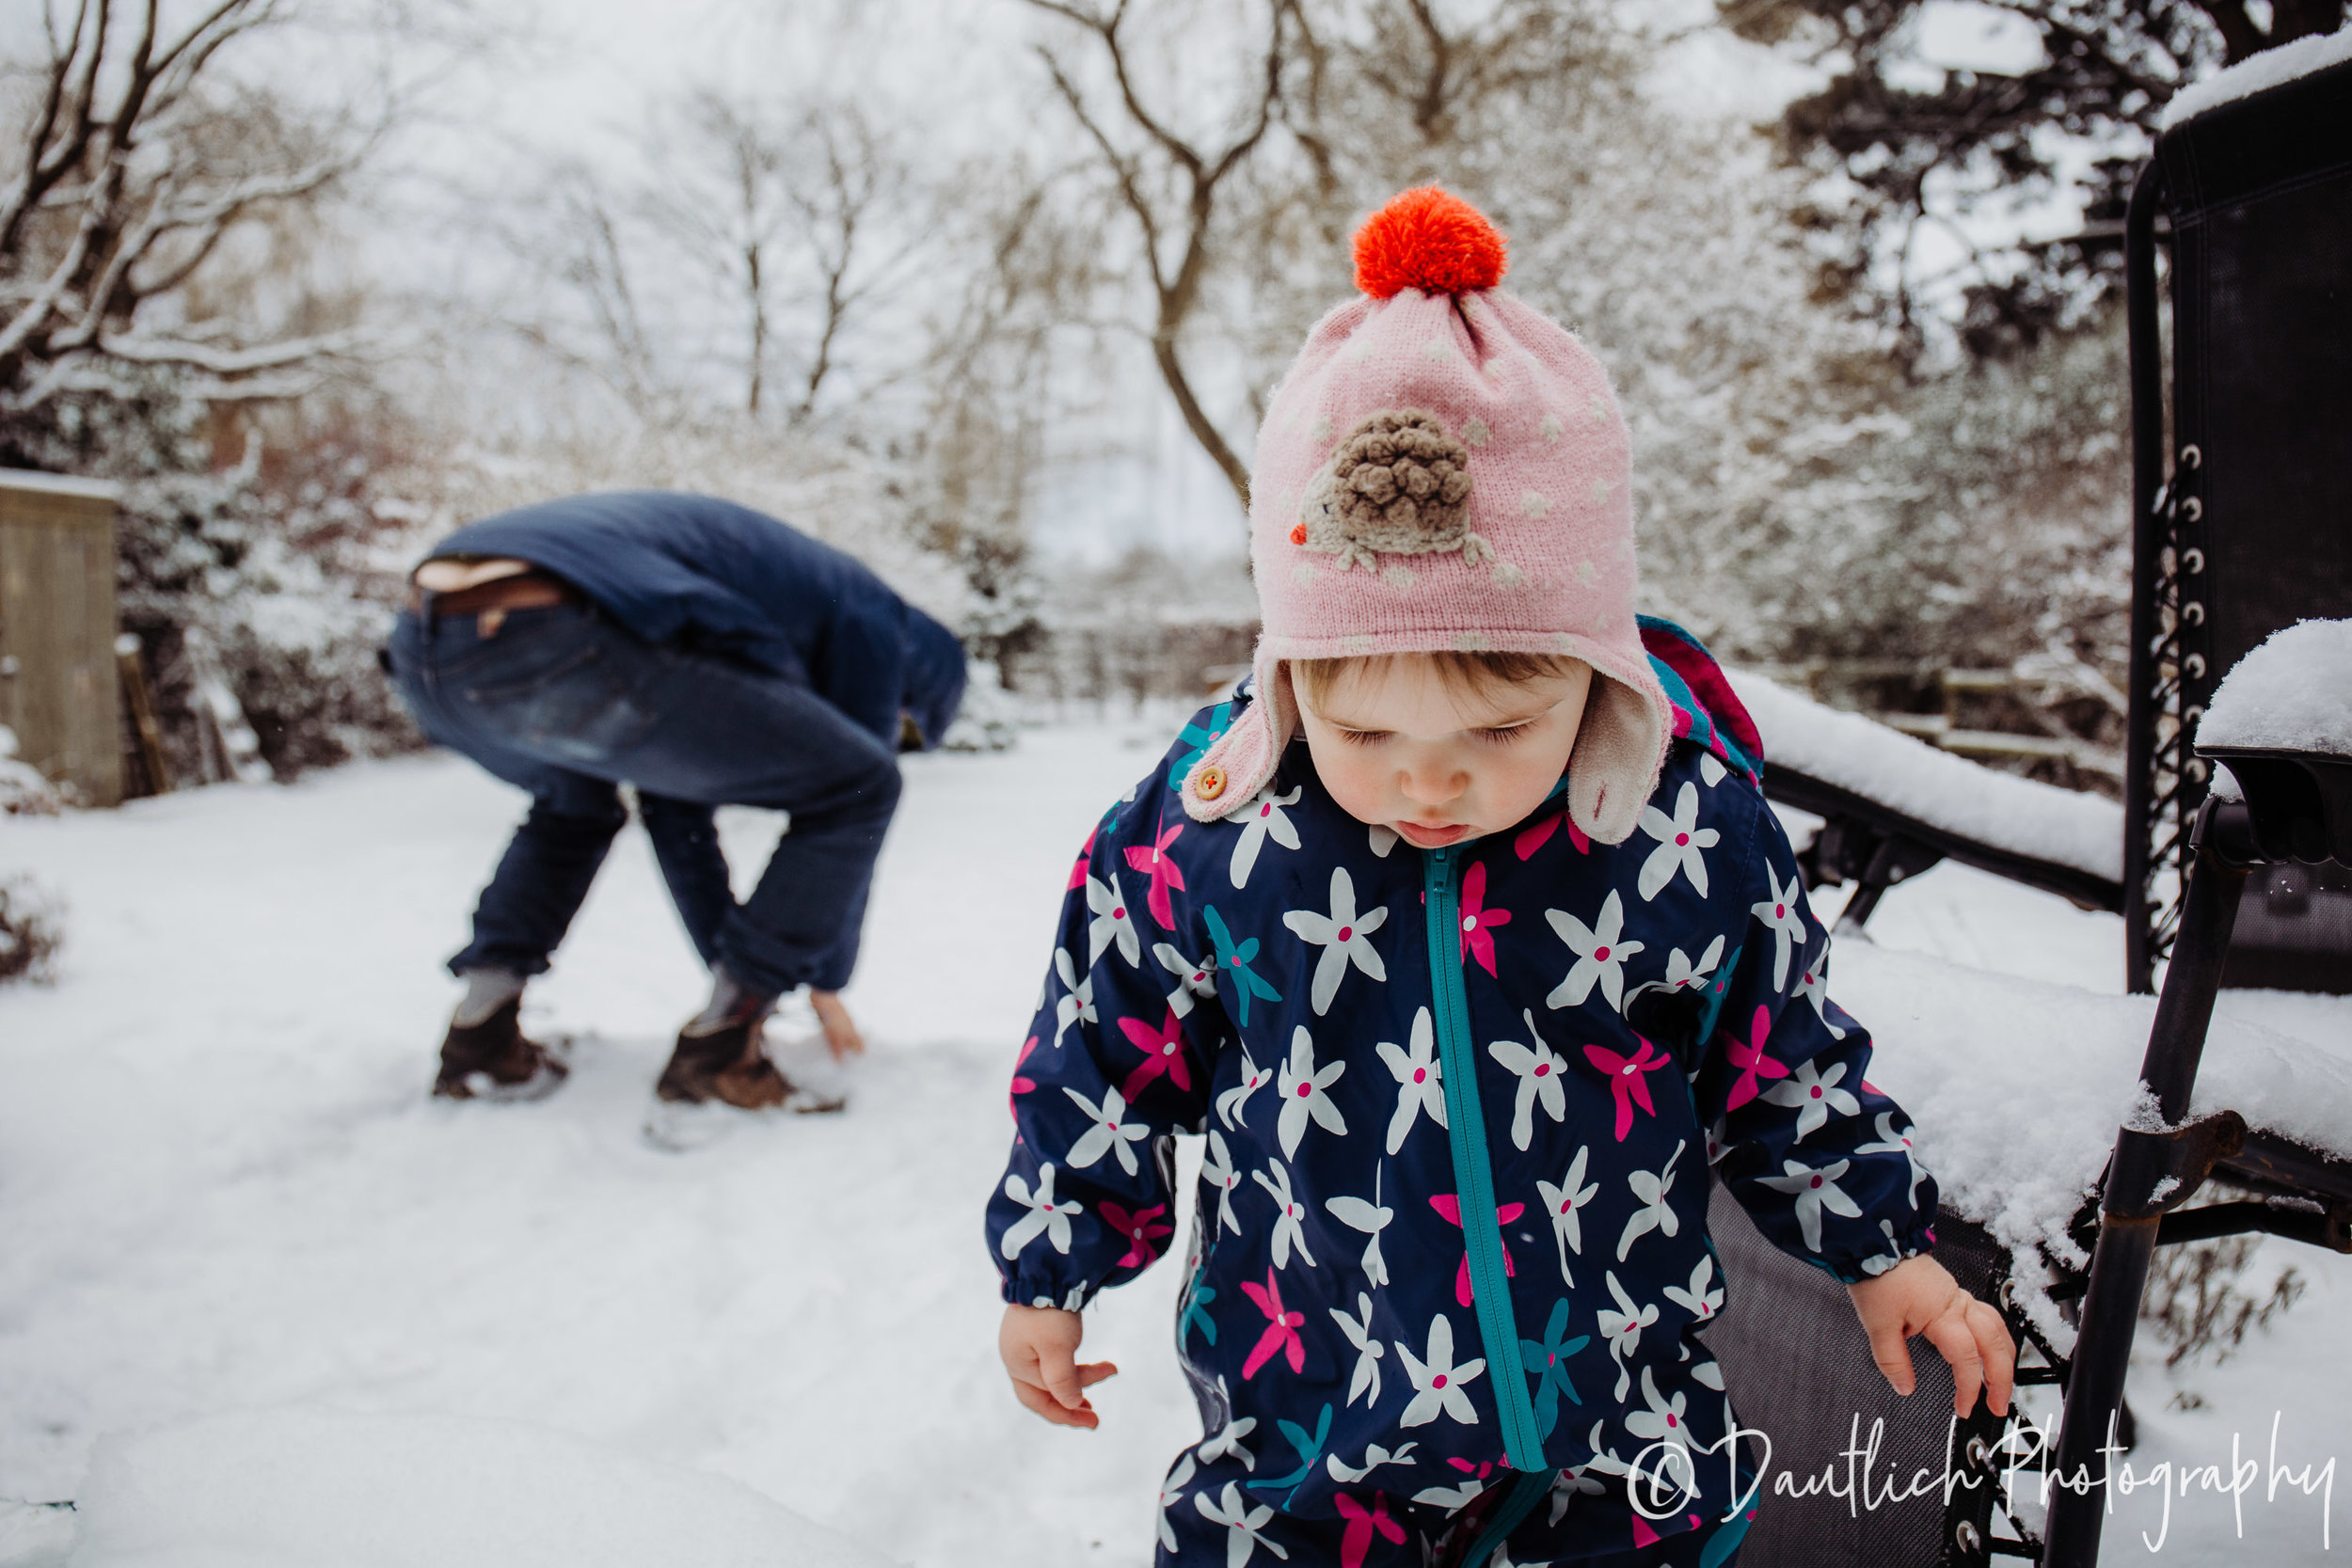 2.27.18_dautlich_photography_Hazel_snow_day.jpg